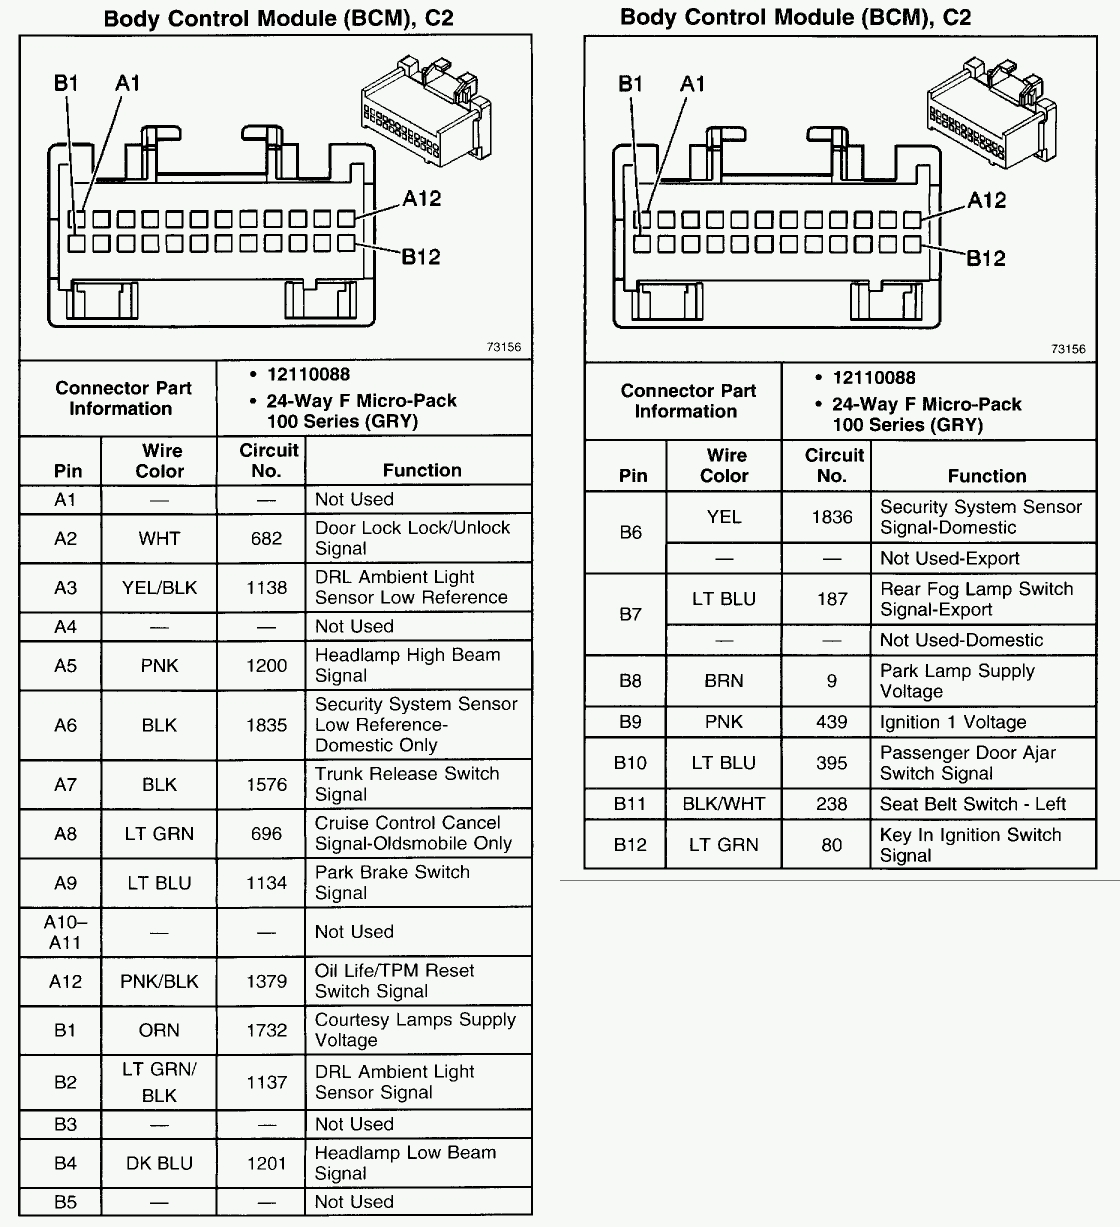 Wiring Harness For 04 Grand Prix : Pontiac grand prix parts diagram automotive